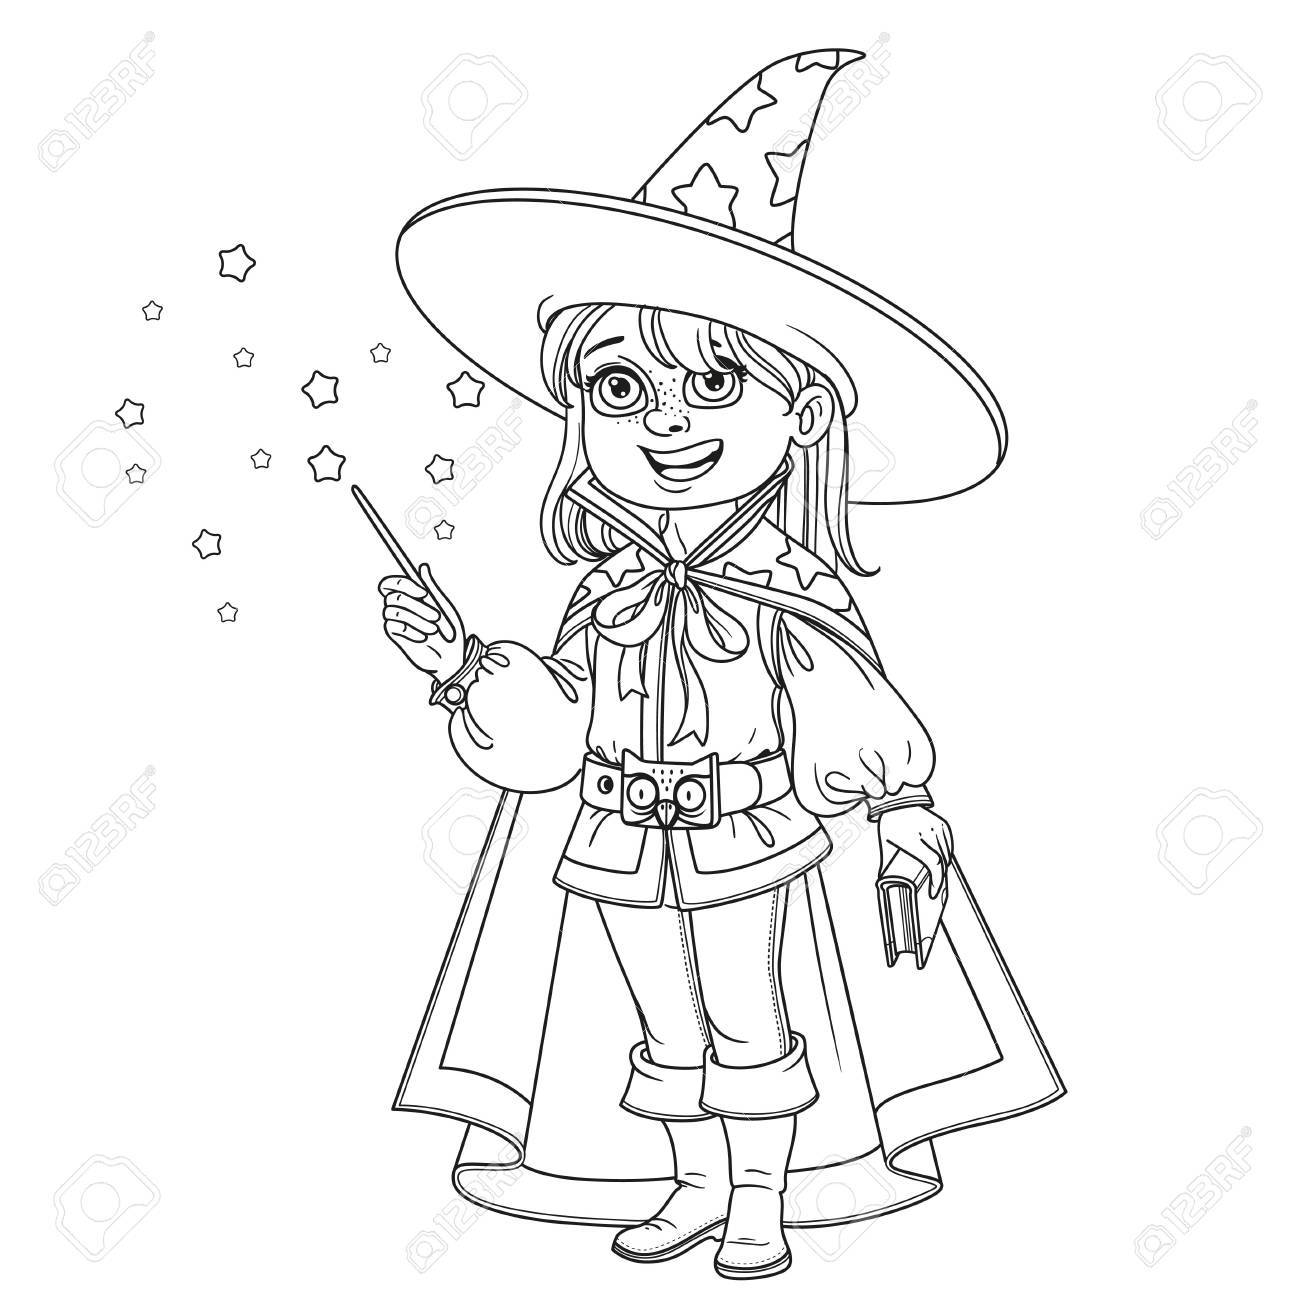 Cute Boy In Magician Costume Outlined For Coloring Page Stock Vector